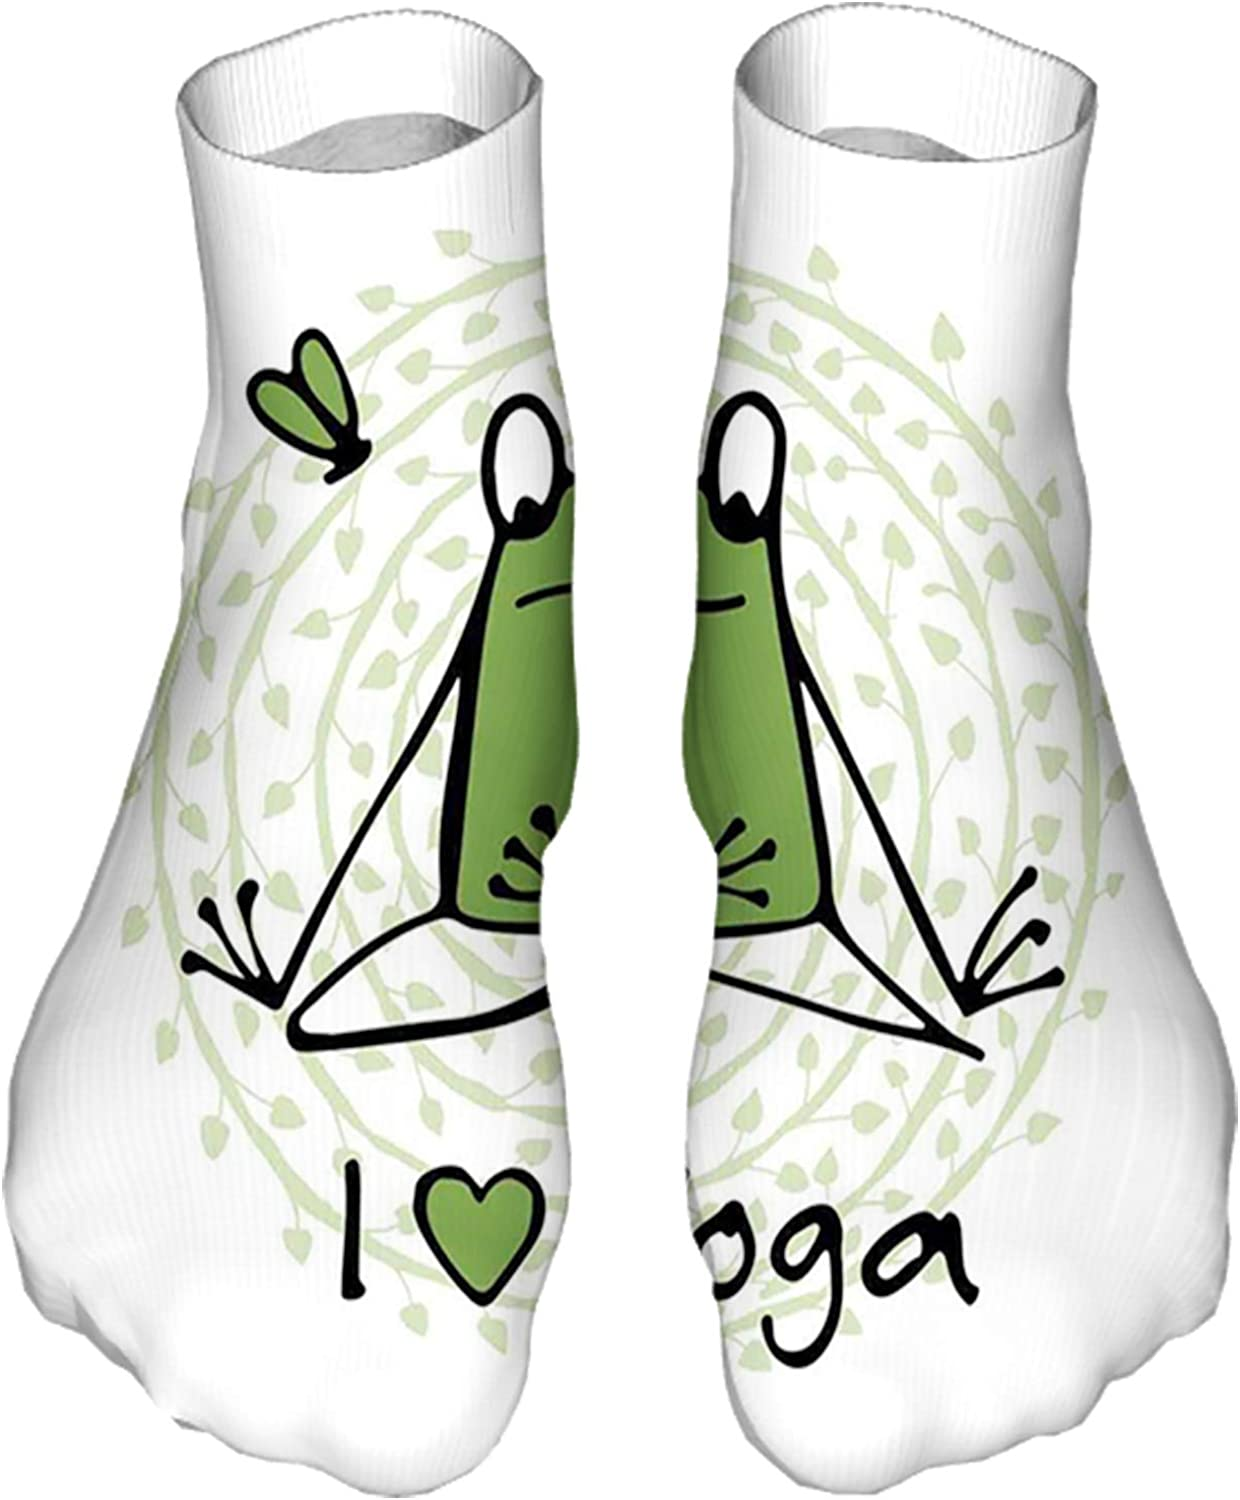 Women's Colorful Patterned Unisex Low Cut/No Show Socks,Funny Cartoon Character Sketch Style Animal with I Love